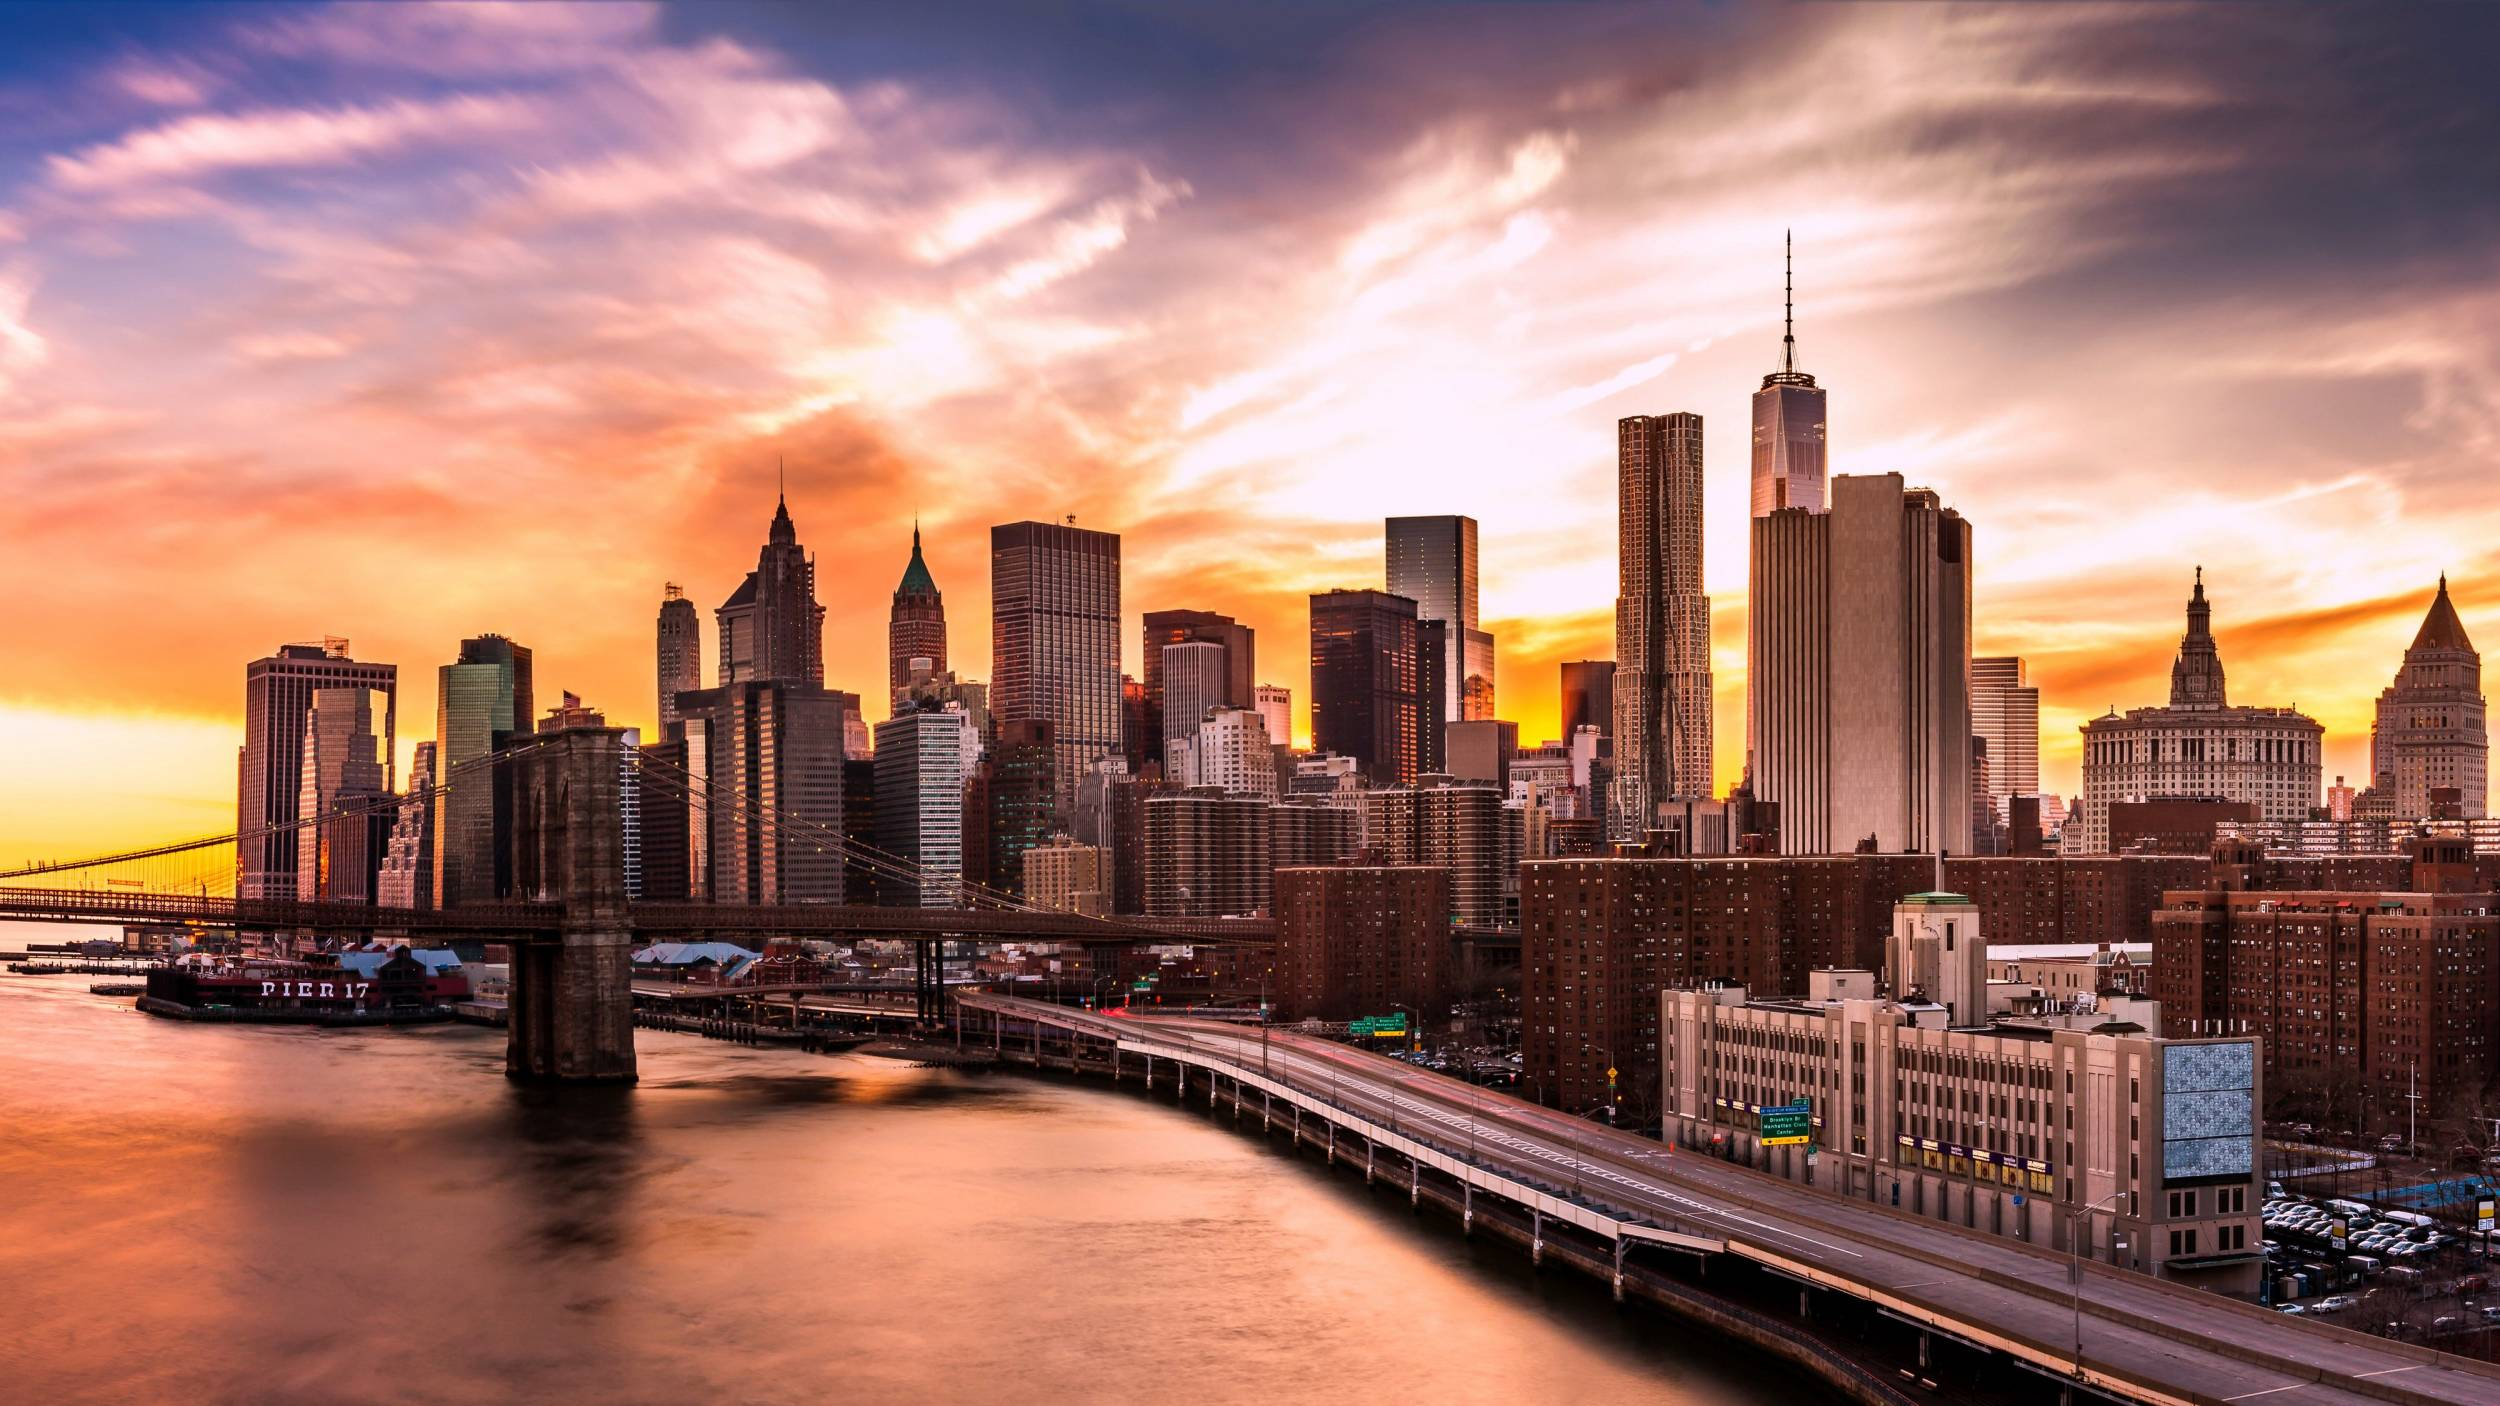 New York City Laptop Wallpapers Top Free New York City Laptop